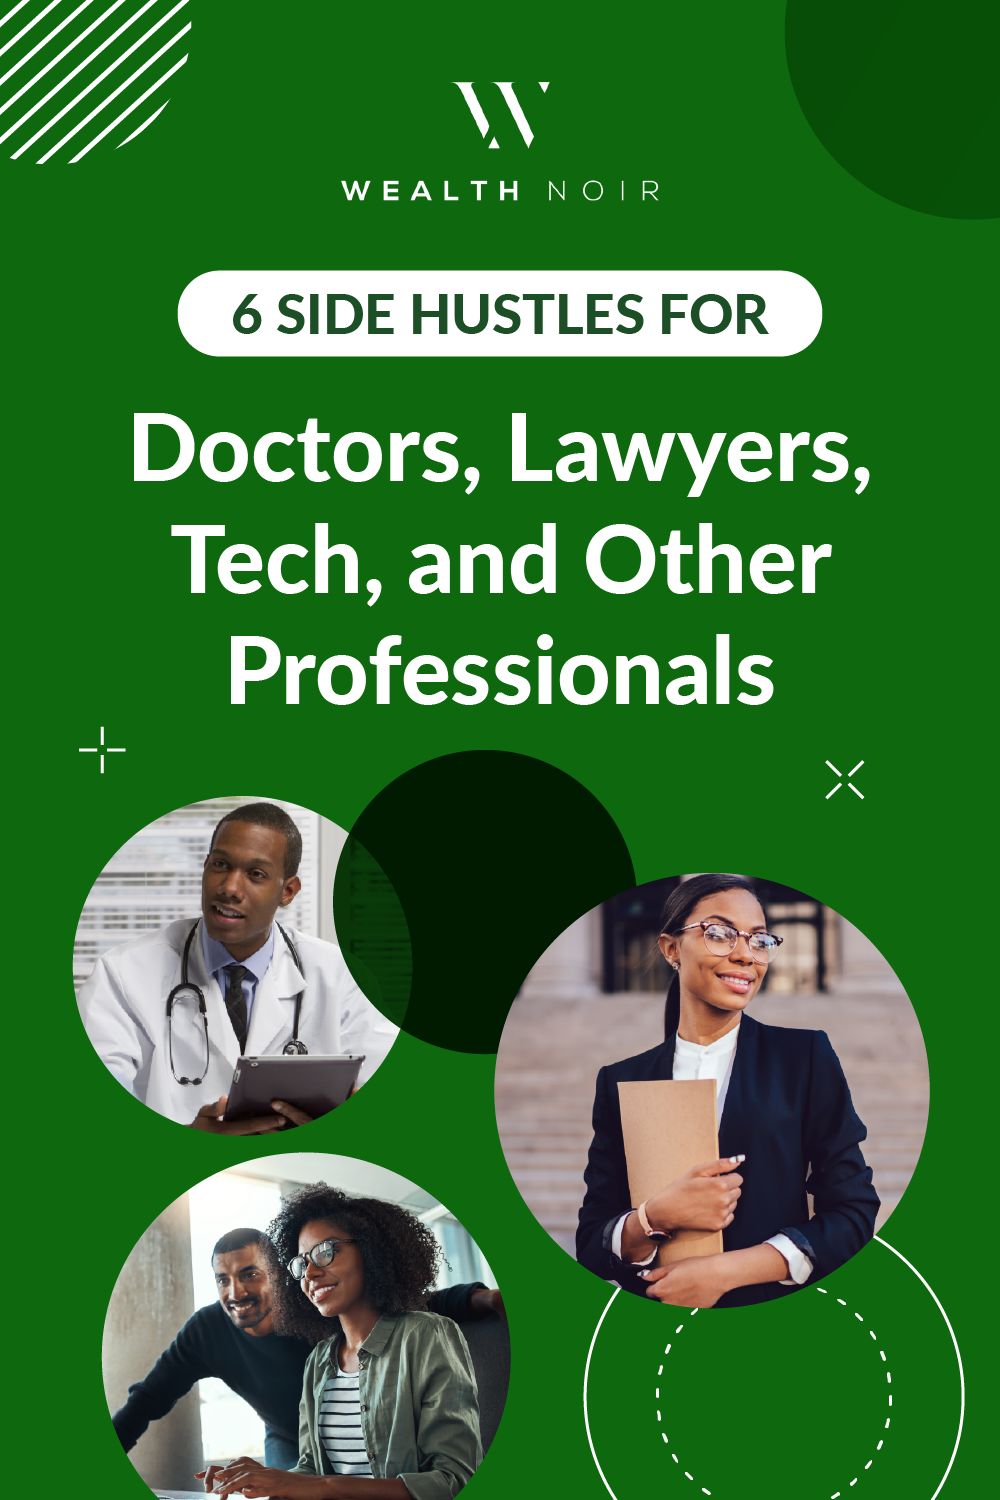 6 Side Hustles for Doctors, Lawyers, Tech, and Other Professionals